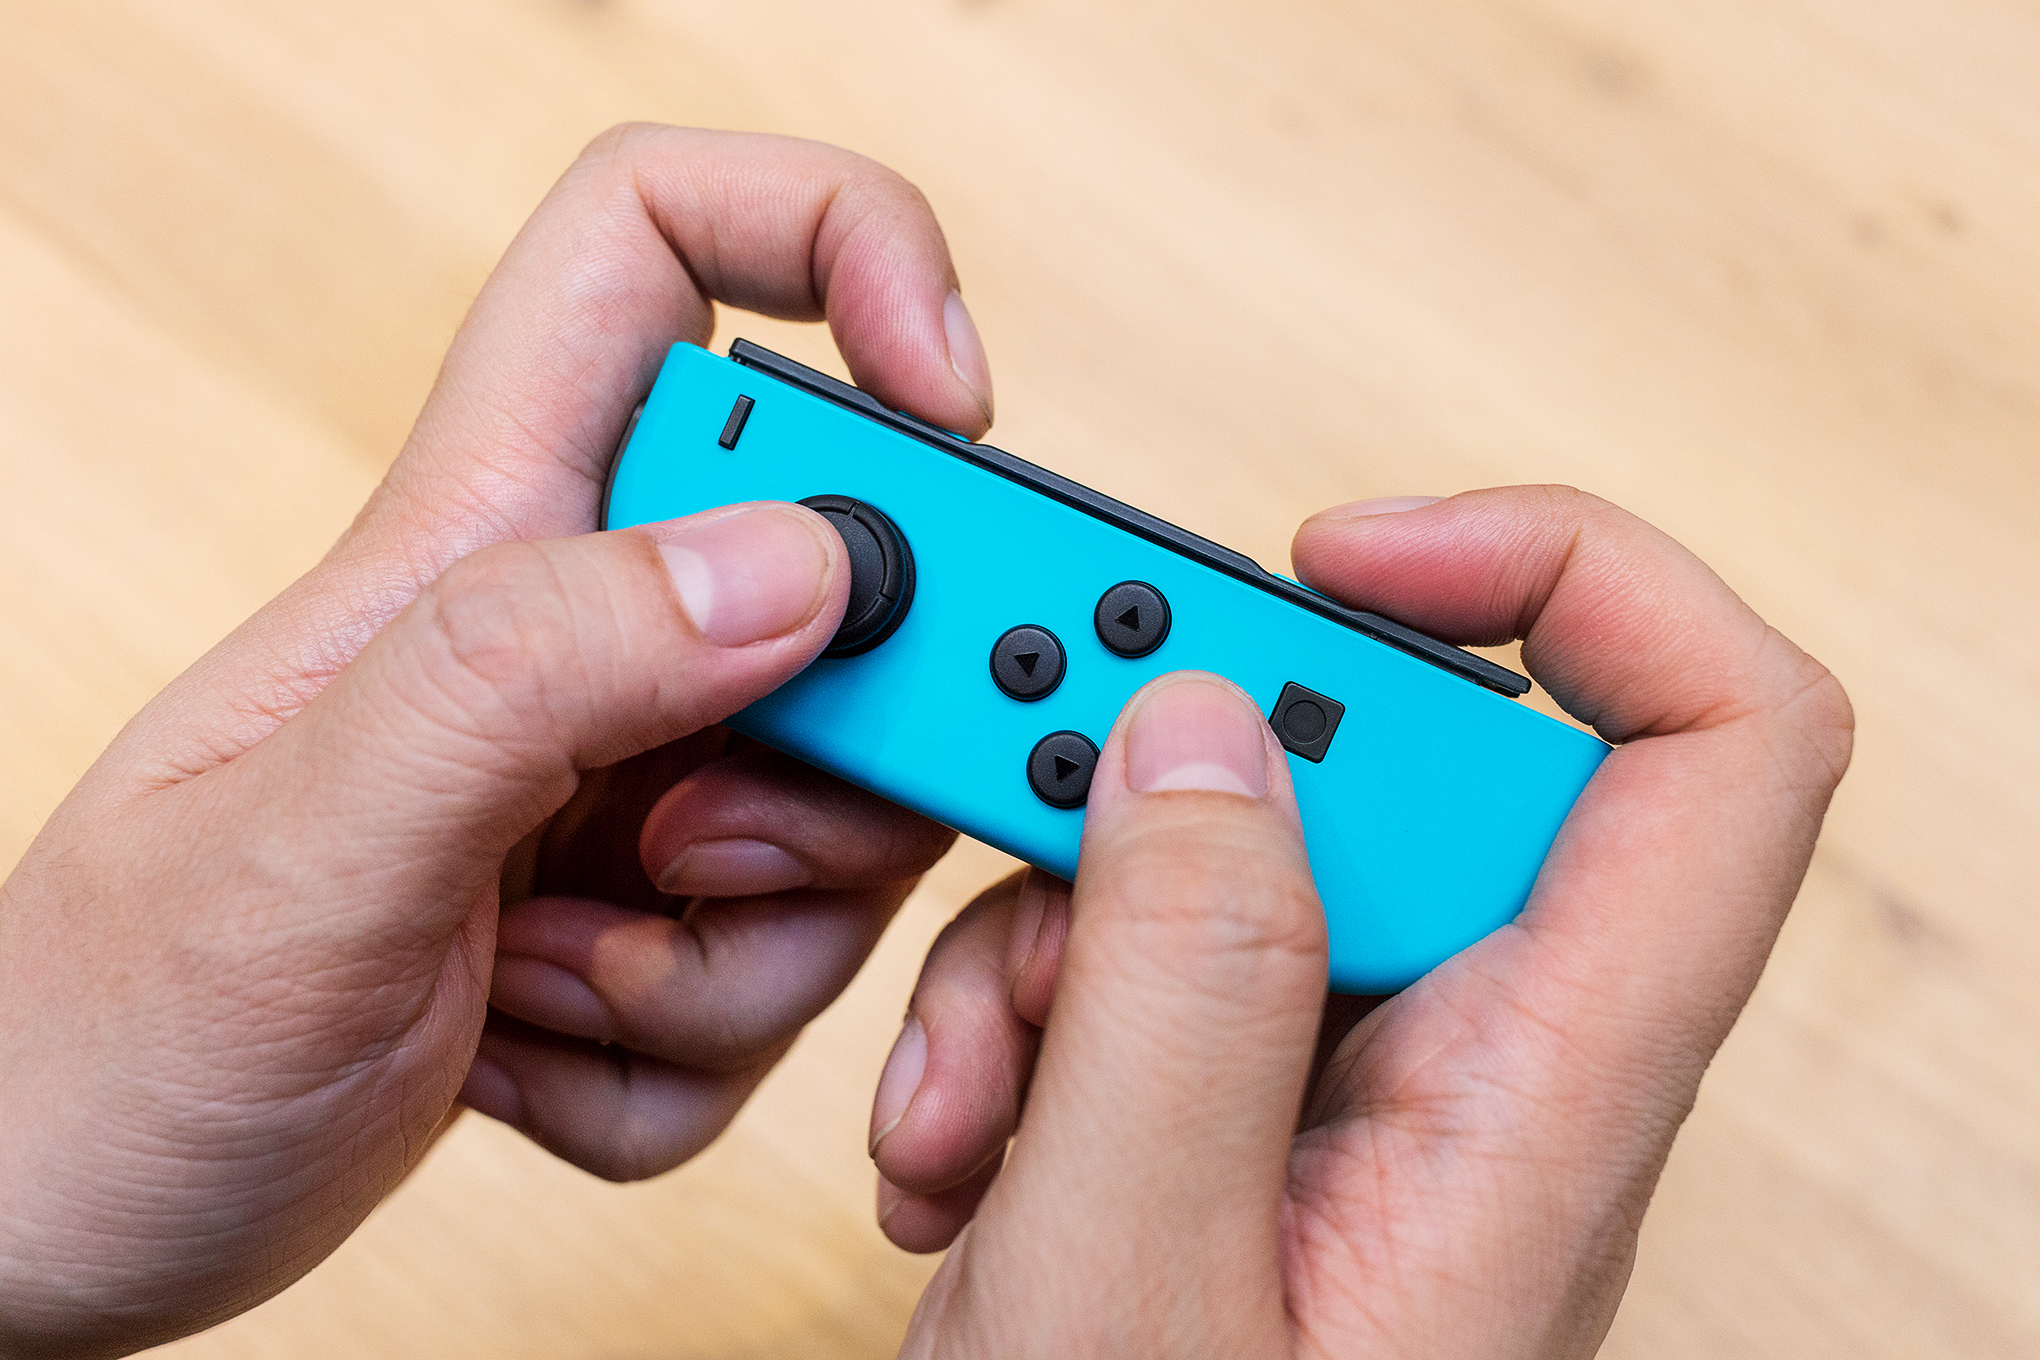 Nintendo Switch Joy-Con controllers $24 off at Newegg (update: sold out)